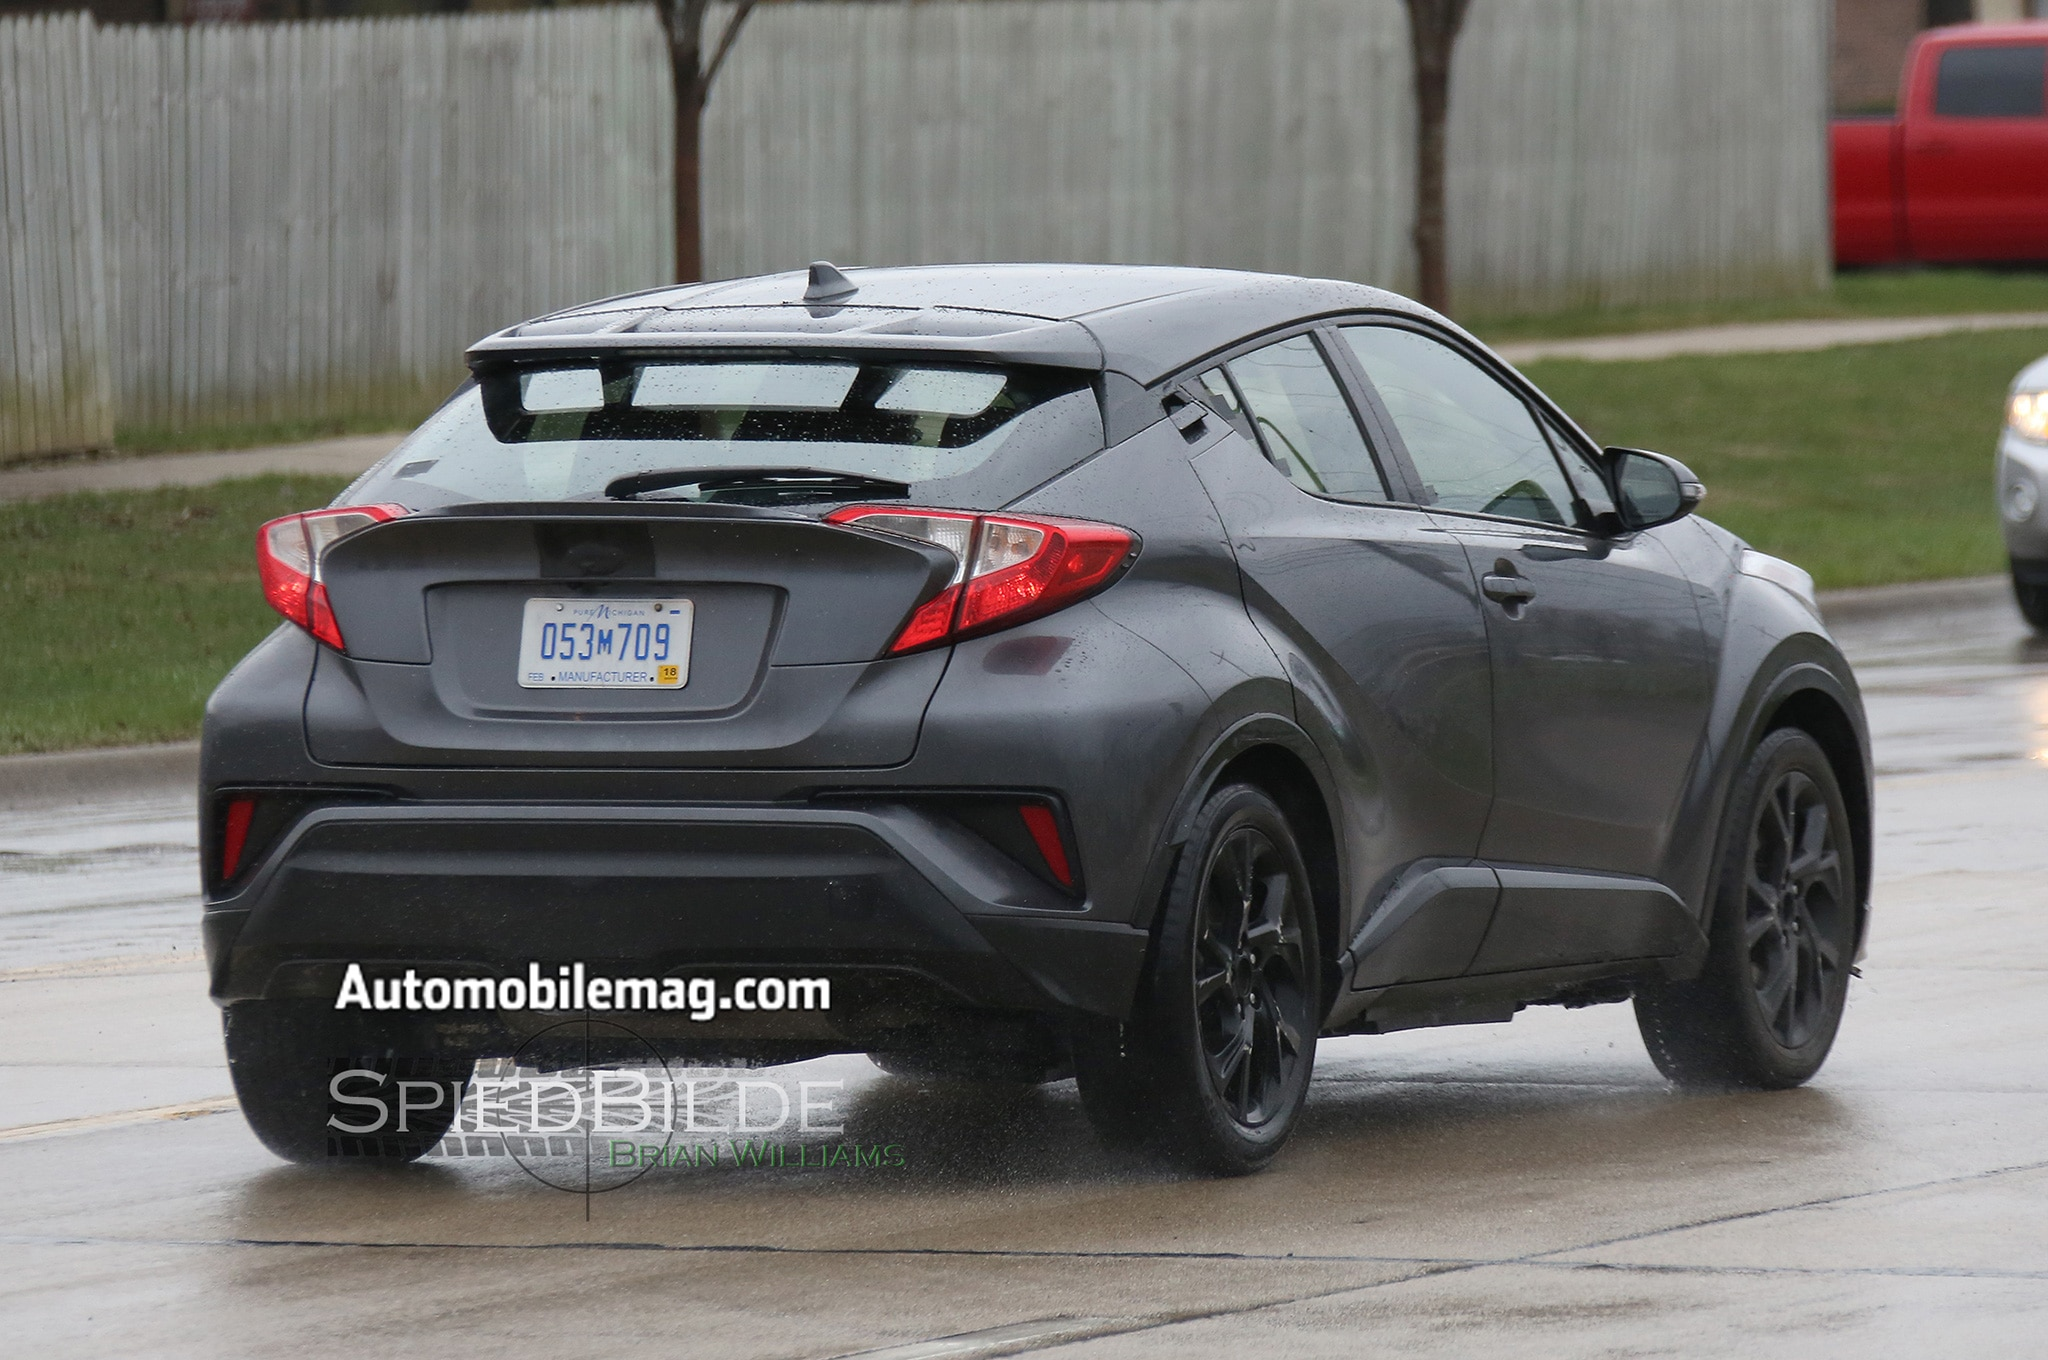 Toyota C-HR Compact Crossover Spied Mostly Undisguised | Automobile ...